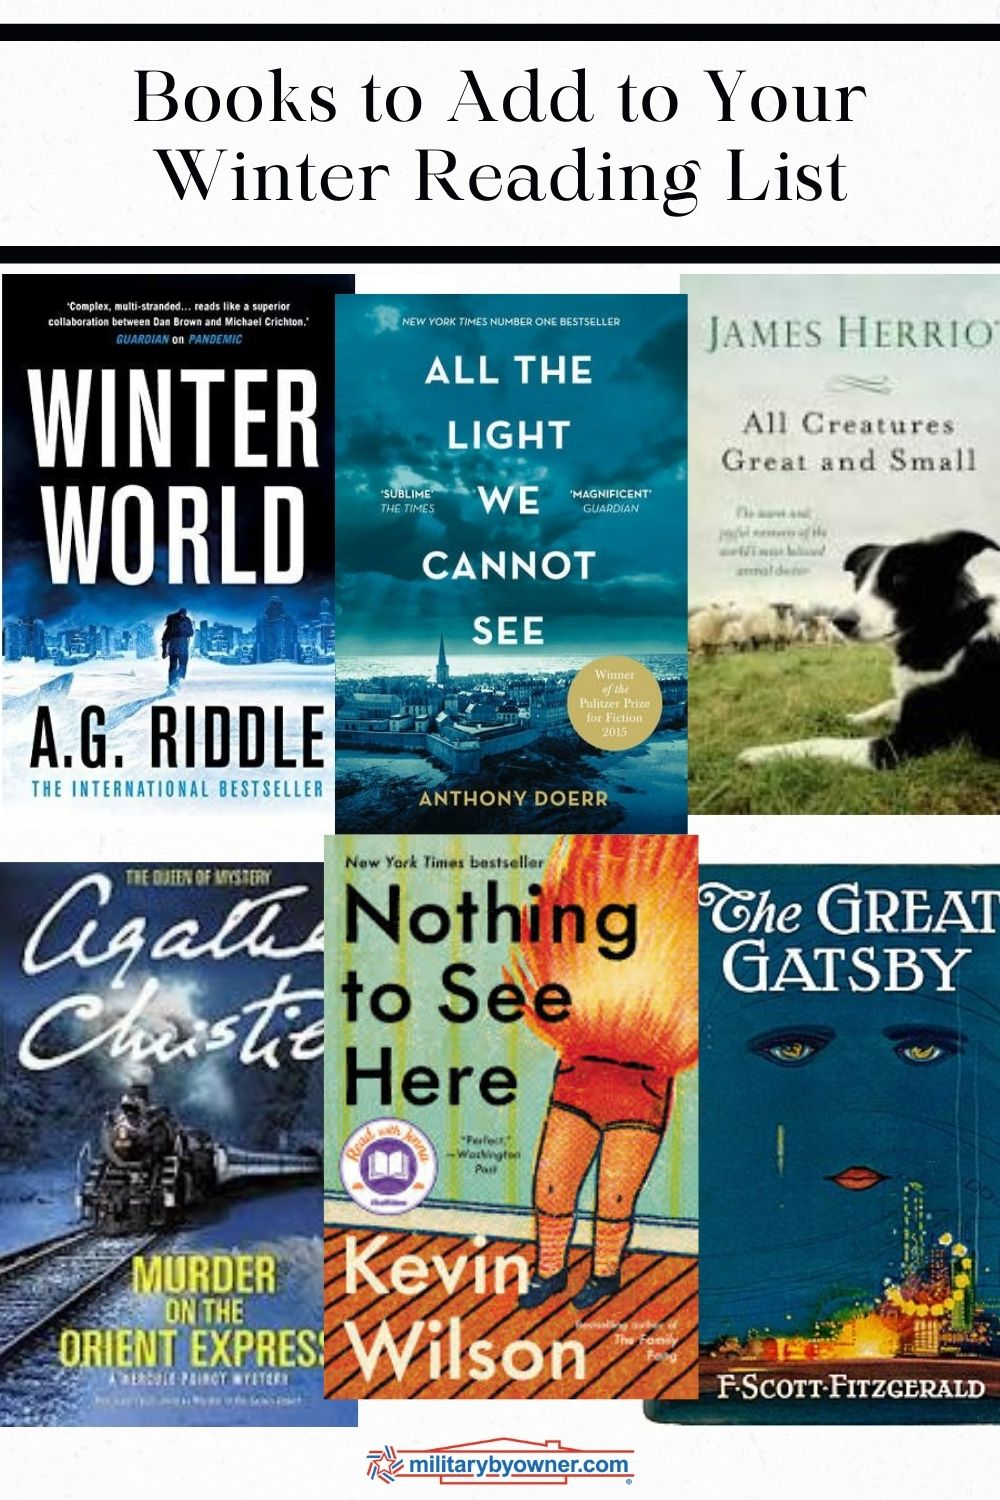 Books to Add to Your Winter Reading List